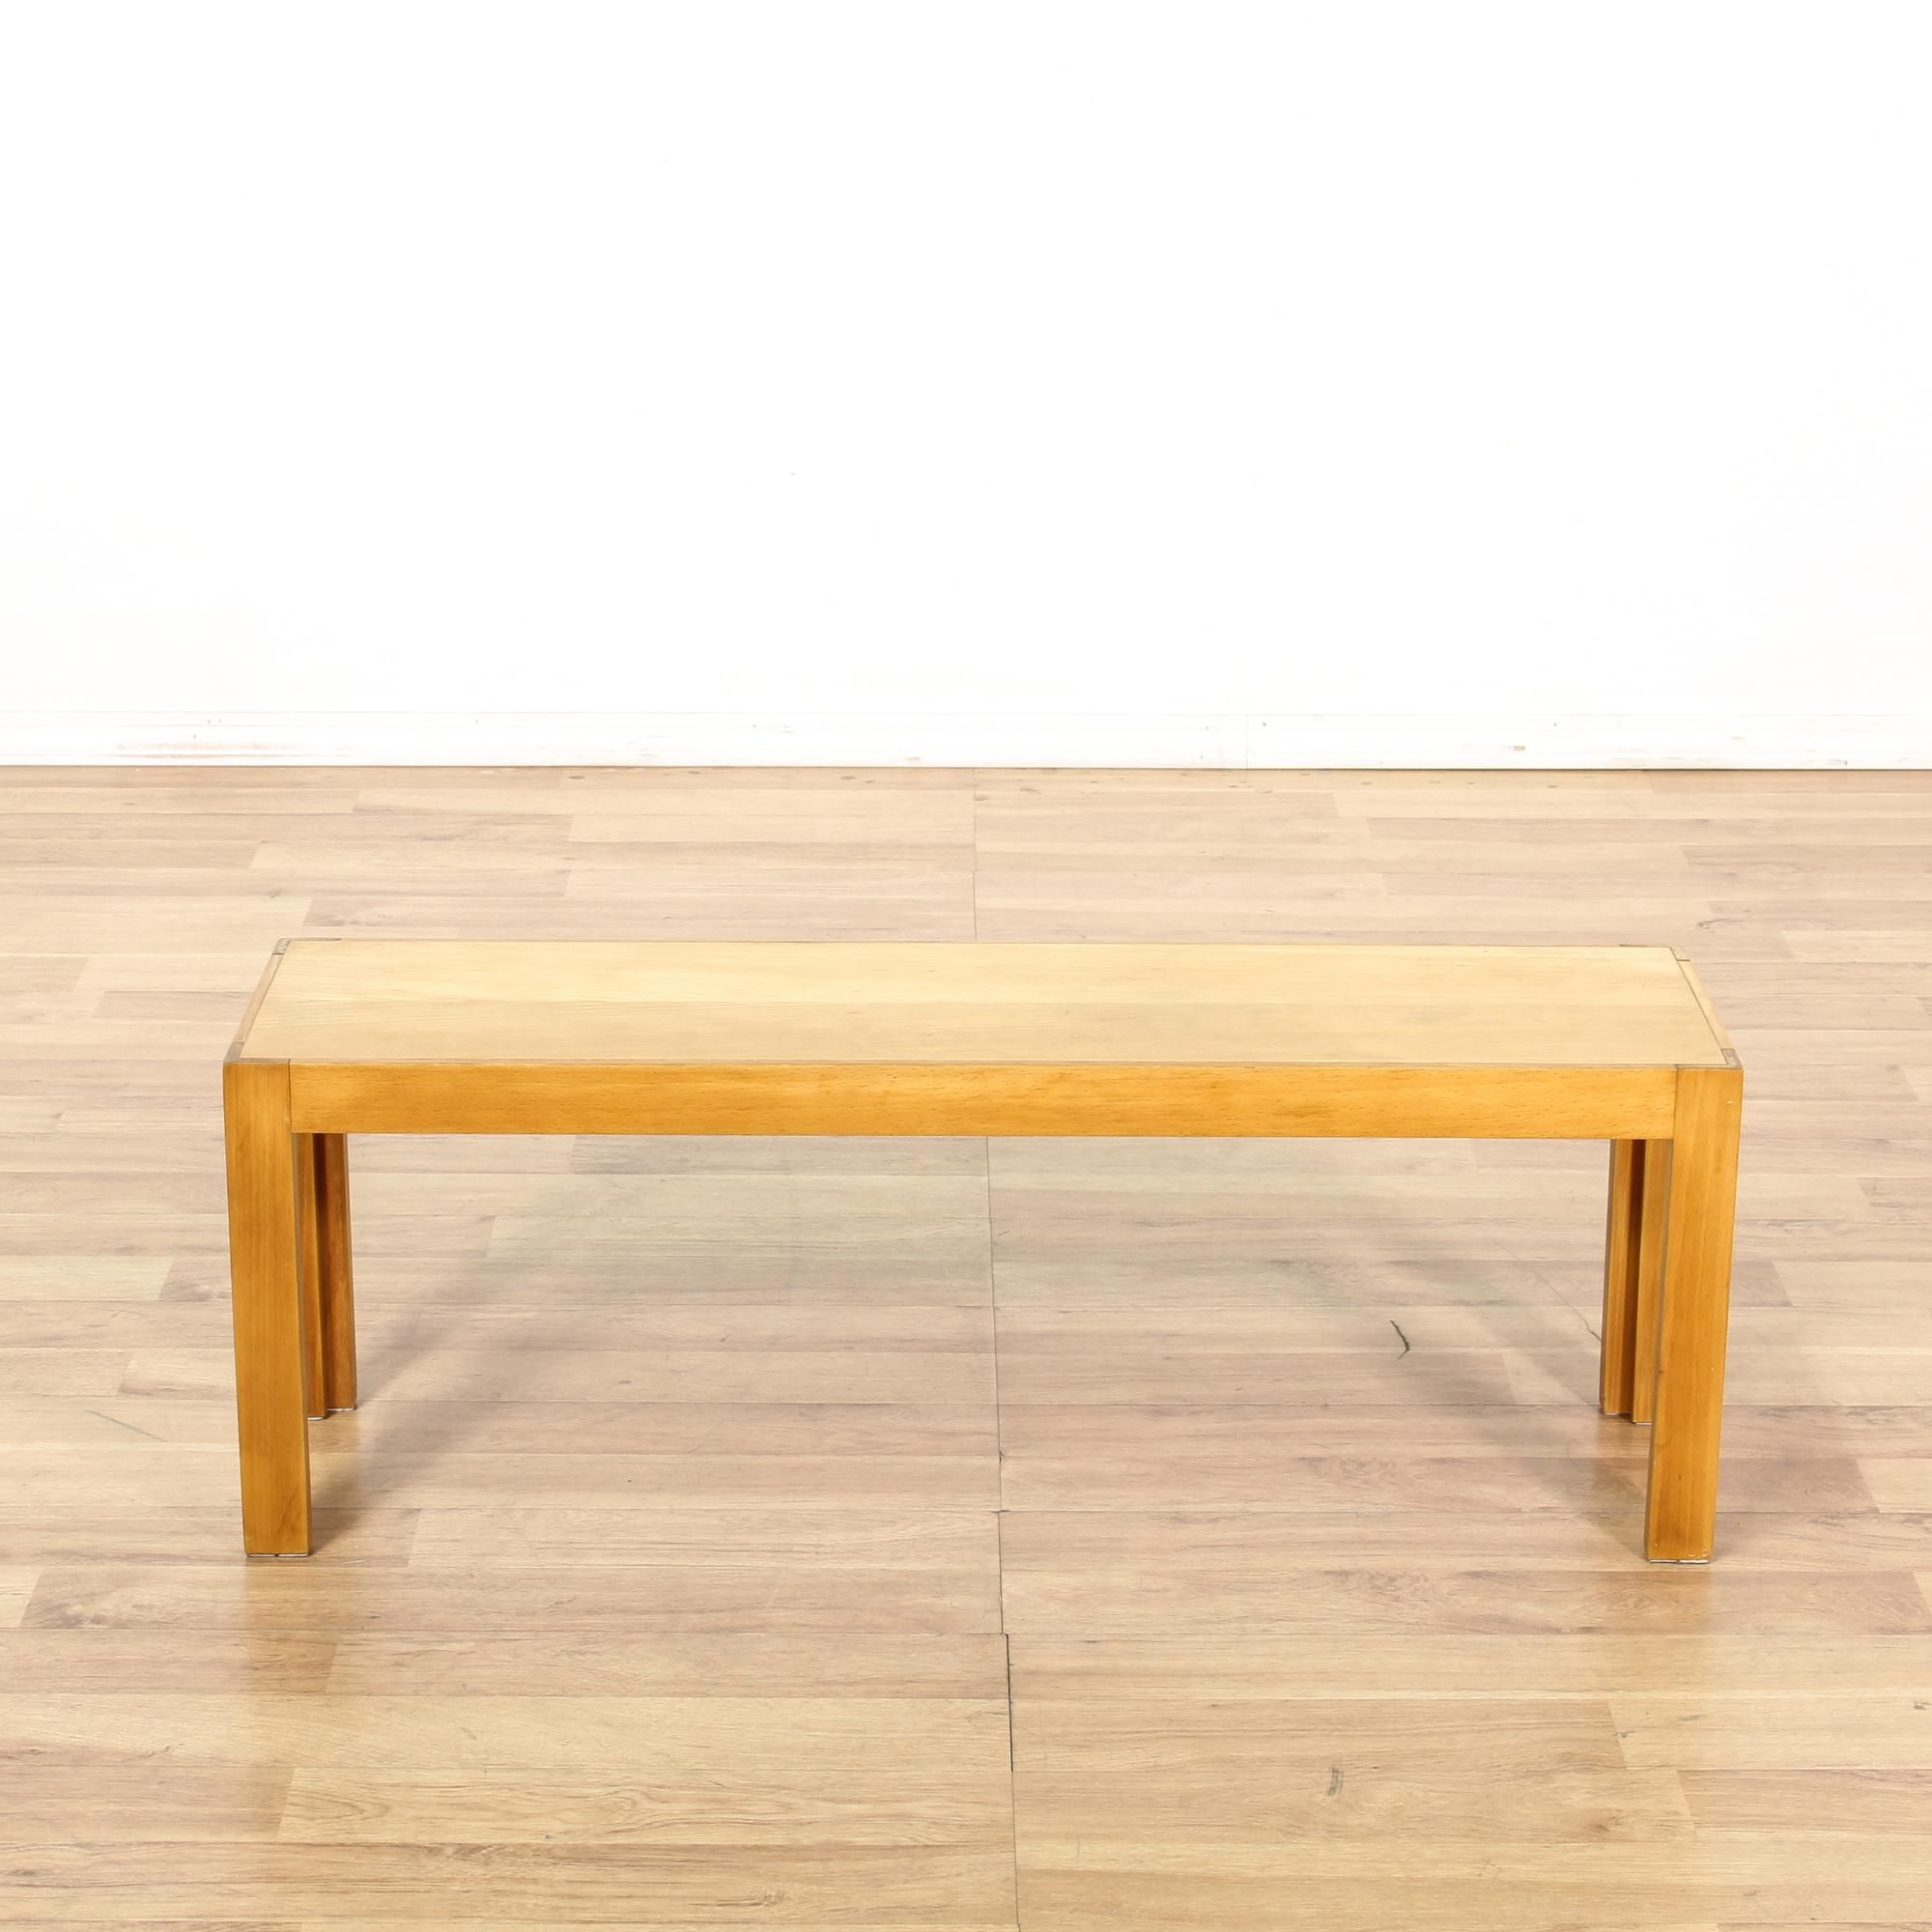 Super This Mid Century Modern Coffee Table Is Featured In A Solid Caraccident5 Cool Chair Designs And Ideas Caraccident5Info